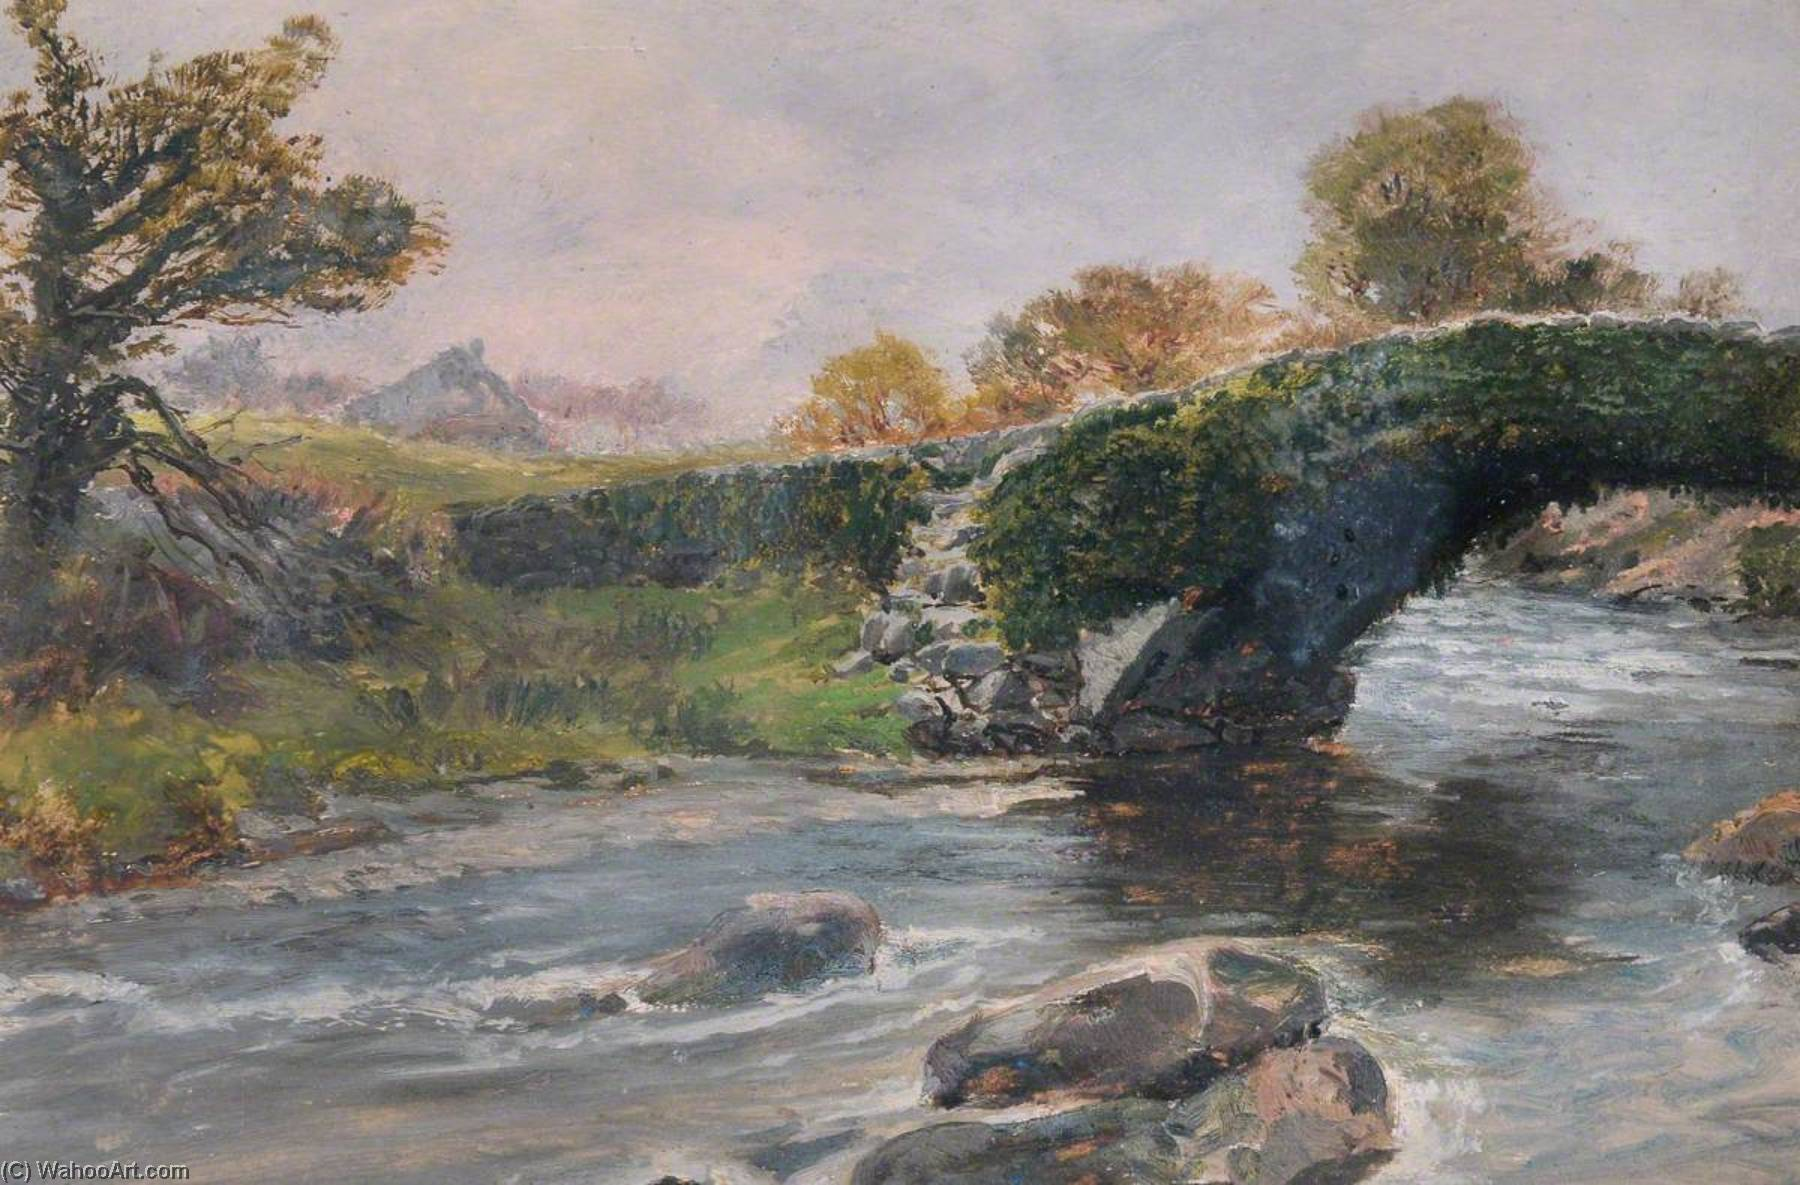 Pont Cim, 1899 by Frederick William Hayes | Art Reproductions Frederick William Hayes | WahooArt.com